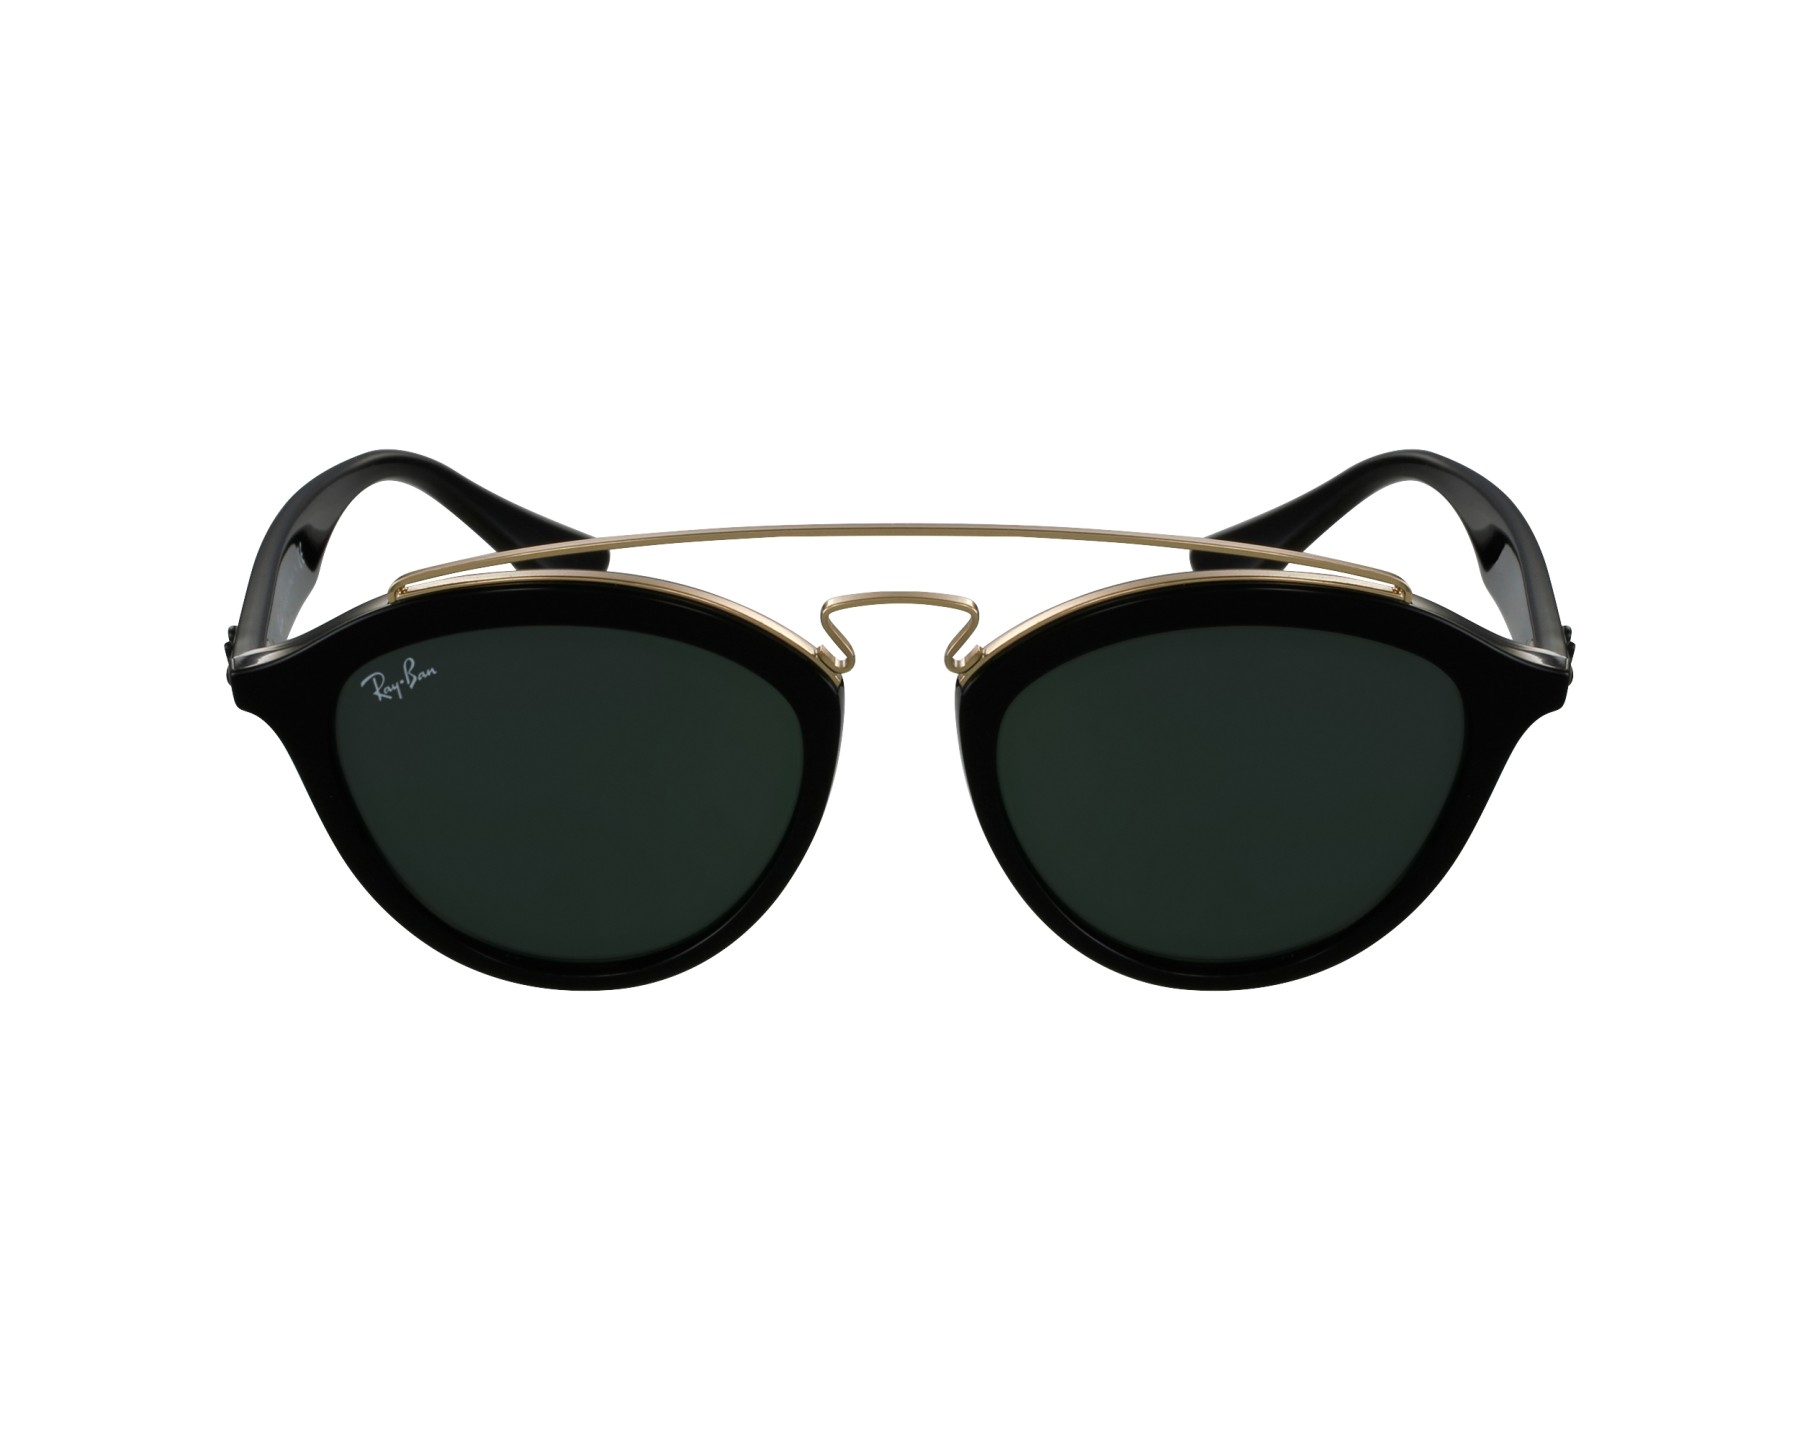 81026c5789 Sunglasses Ray-Ban RB-4257 601 71 53-19 Black Gold profile